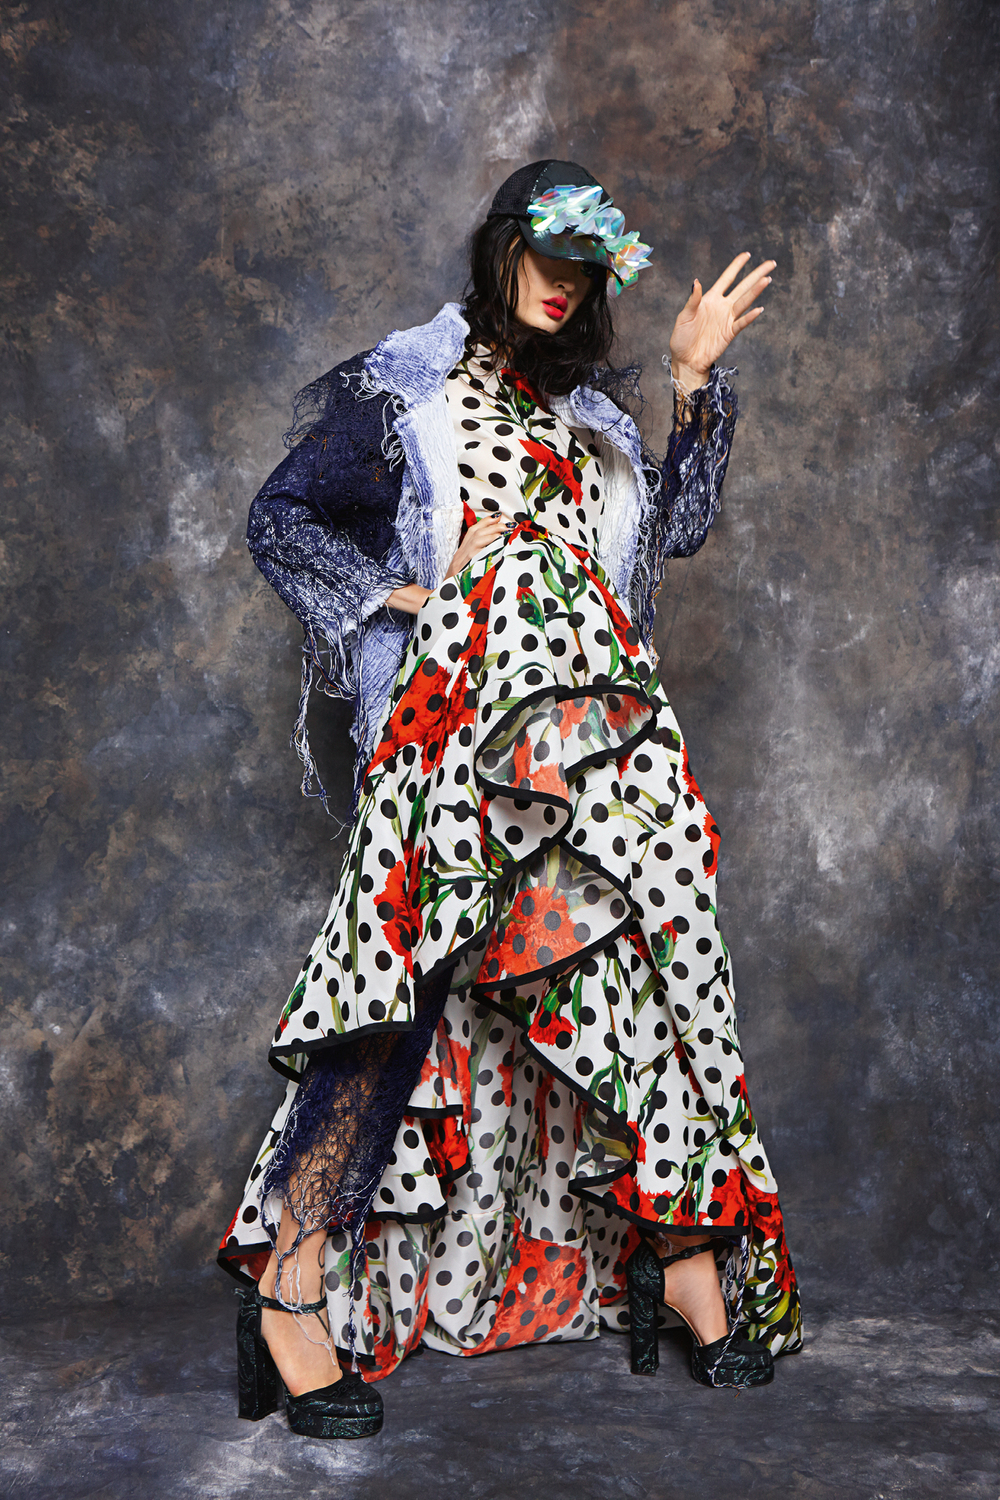 Polka dot frilled floral dress,  Dolce & Gabbana.  Jeans (worn underneath) and shredded denim effect jackets (worn over), all  Faustine Steinmetz.  Cap,  Fyodor Golan.  Head-dress,  Pebble London.  Shoes,  Micheal Van der Ham.